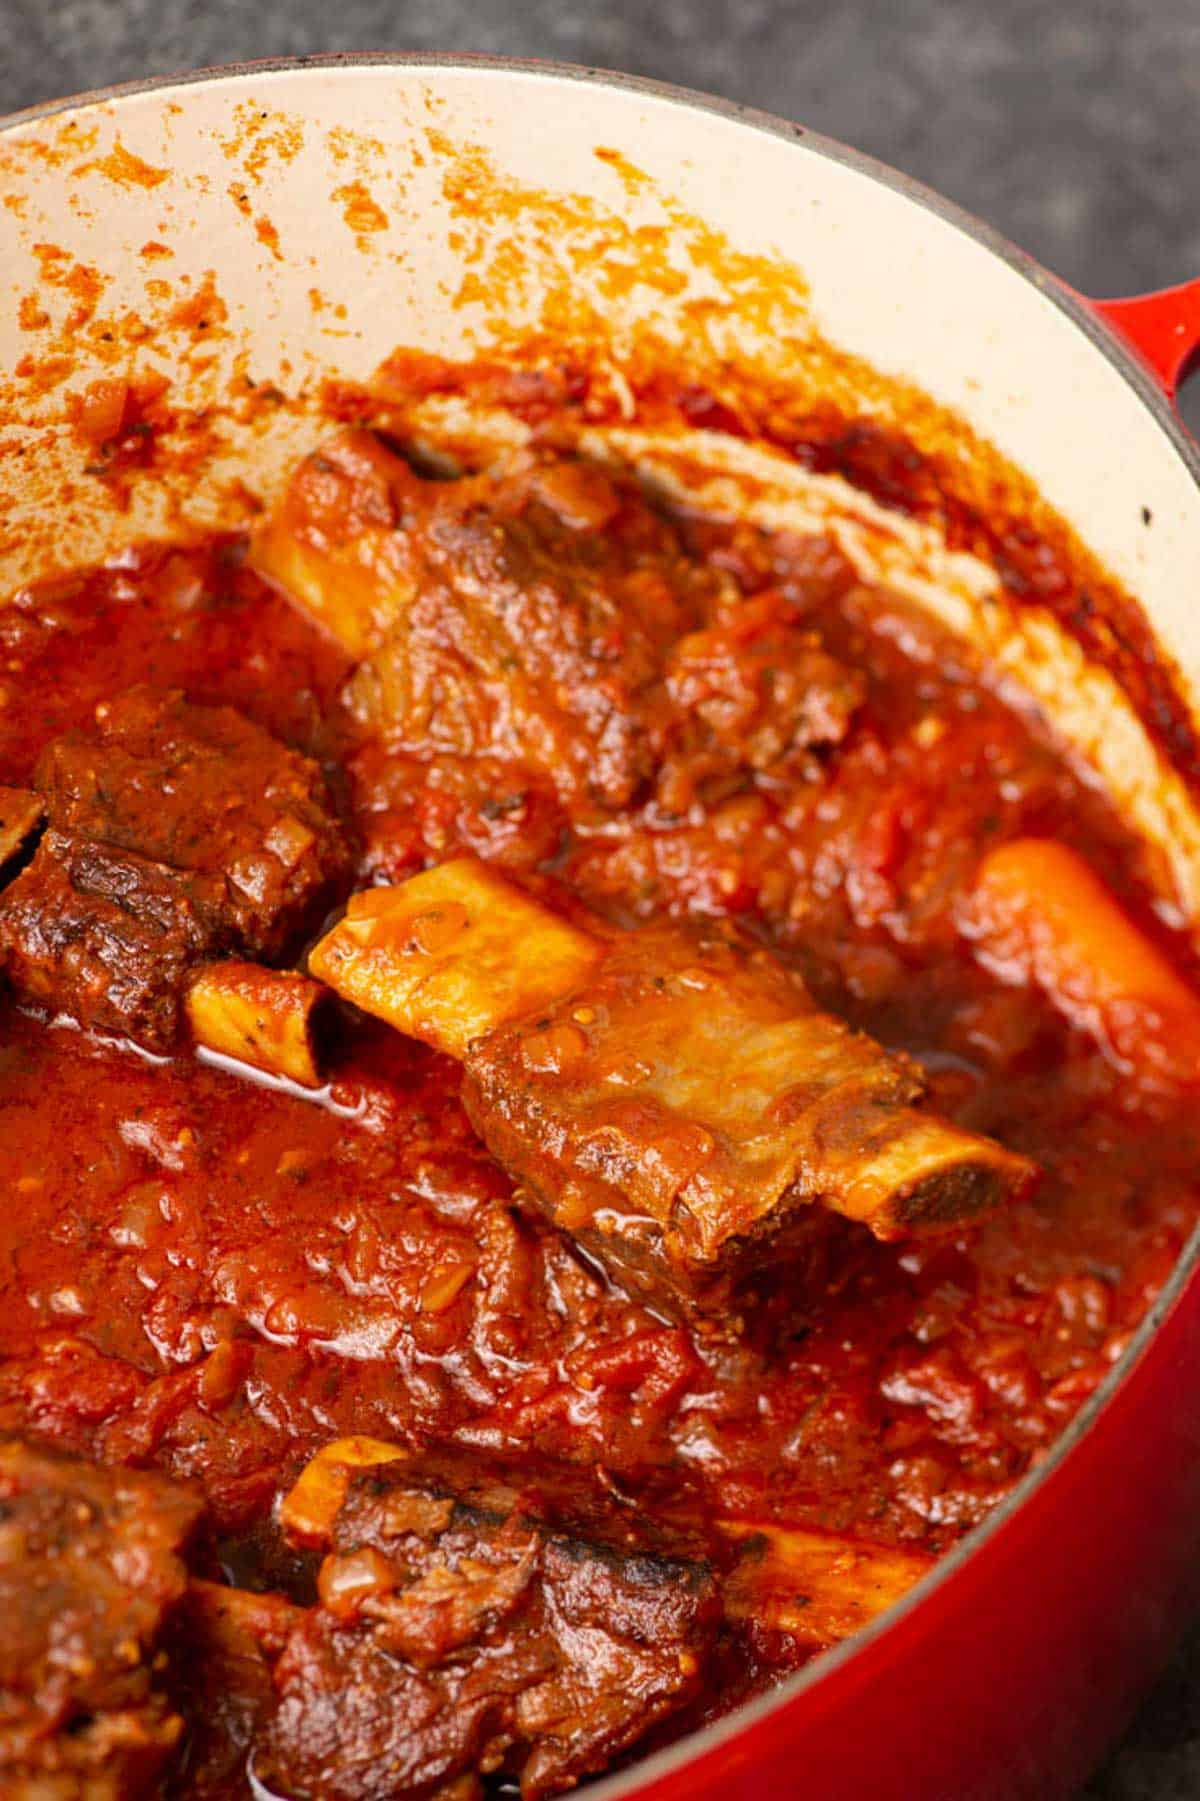 A pot of ribs and sauce